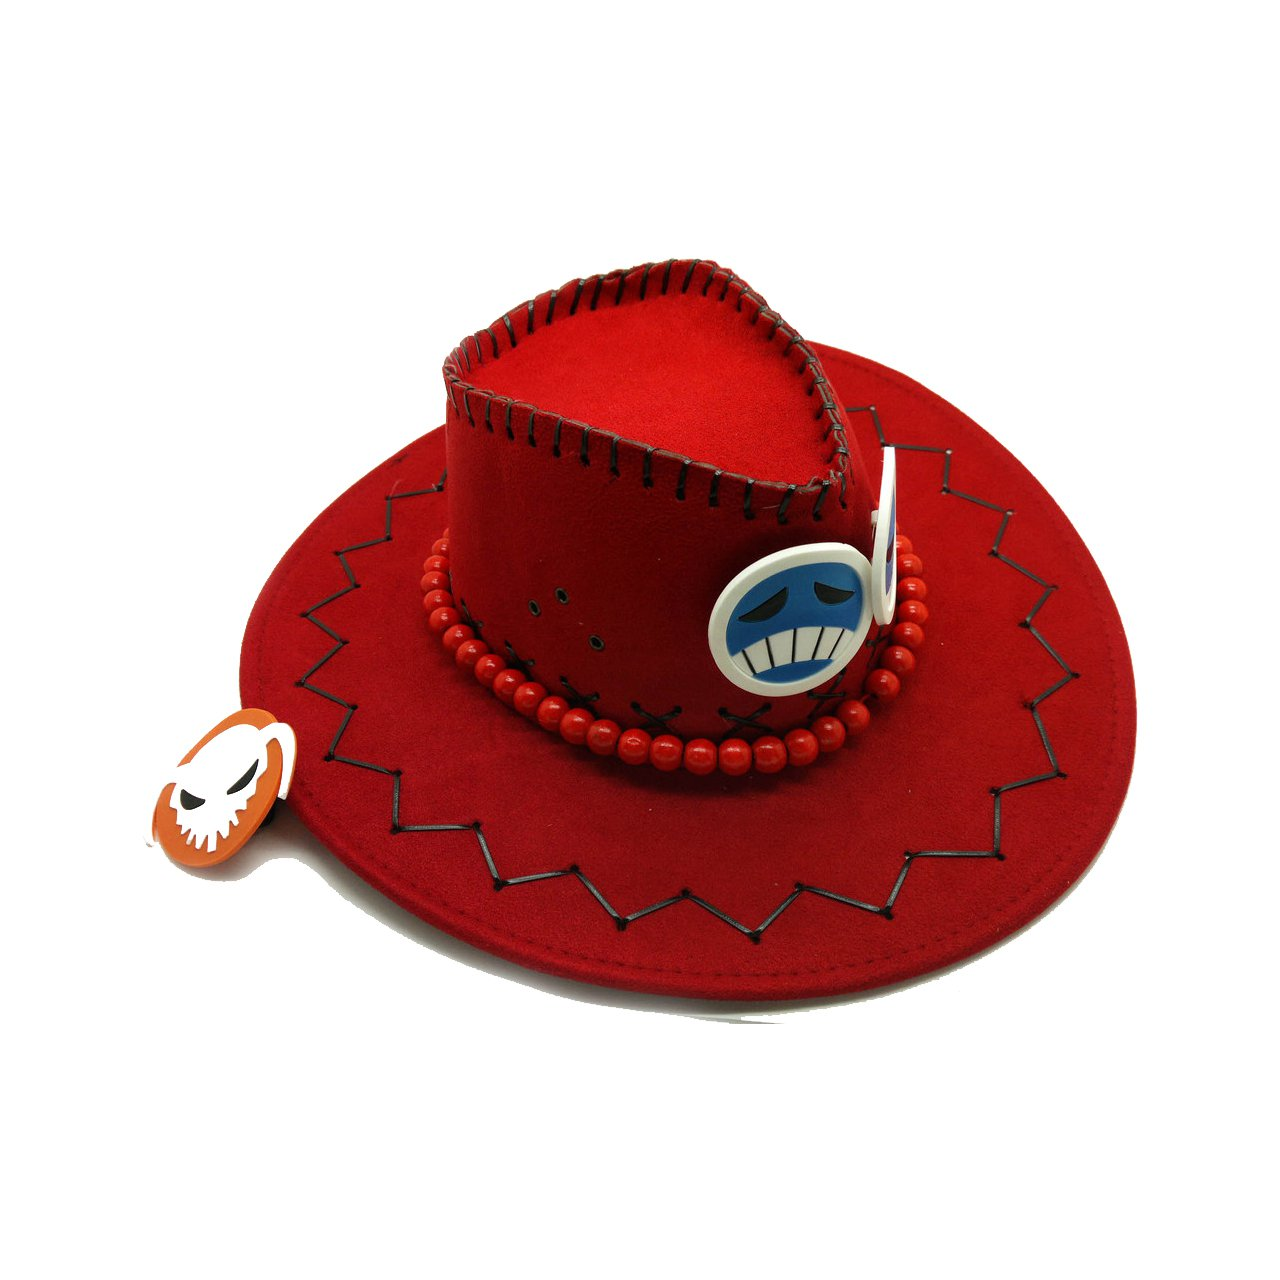 Ace Hats Cosplay Anime One Piece Hats Cosplay White Mustache Adult's Fashion Cowboy Hat Cosplay